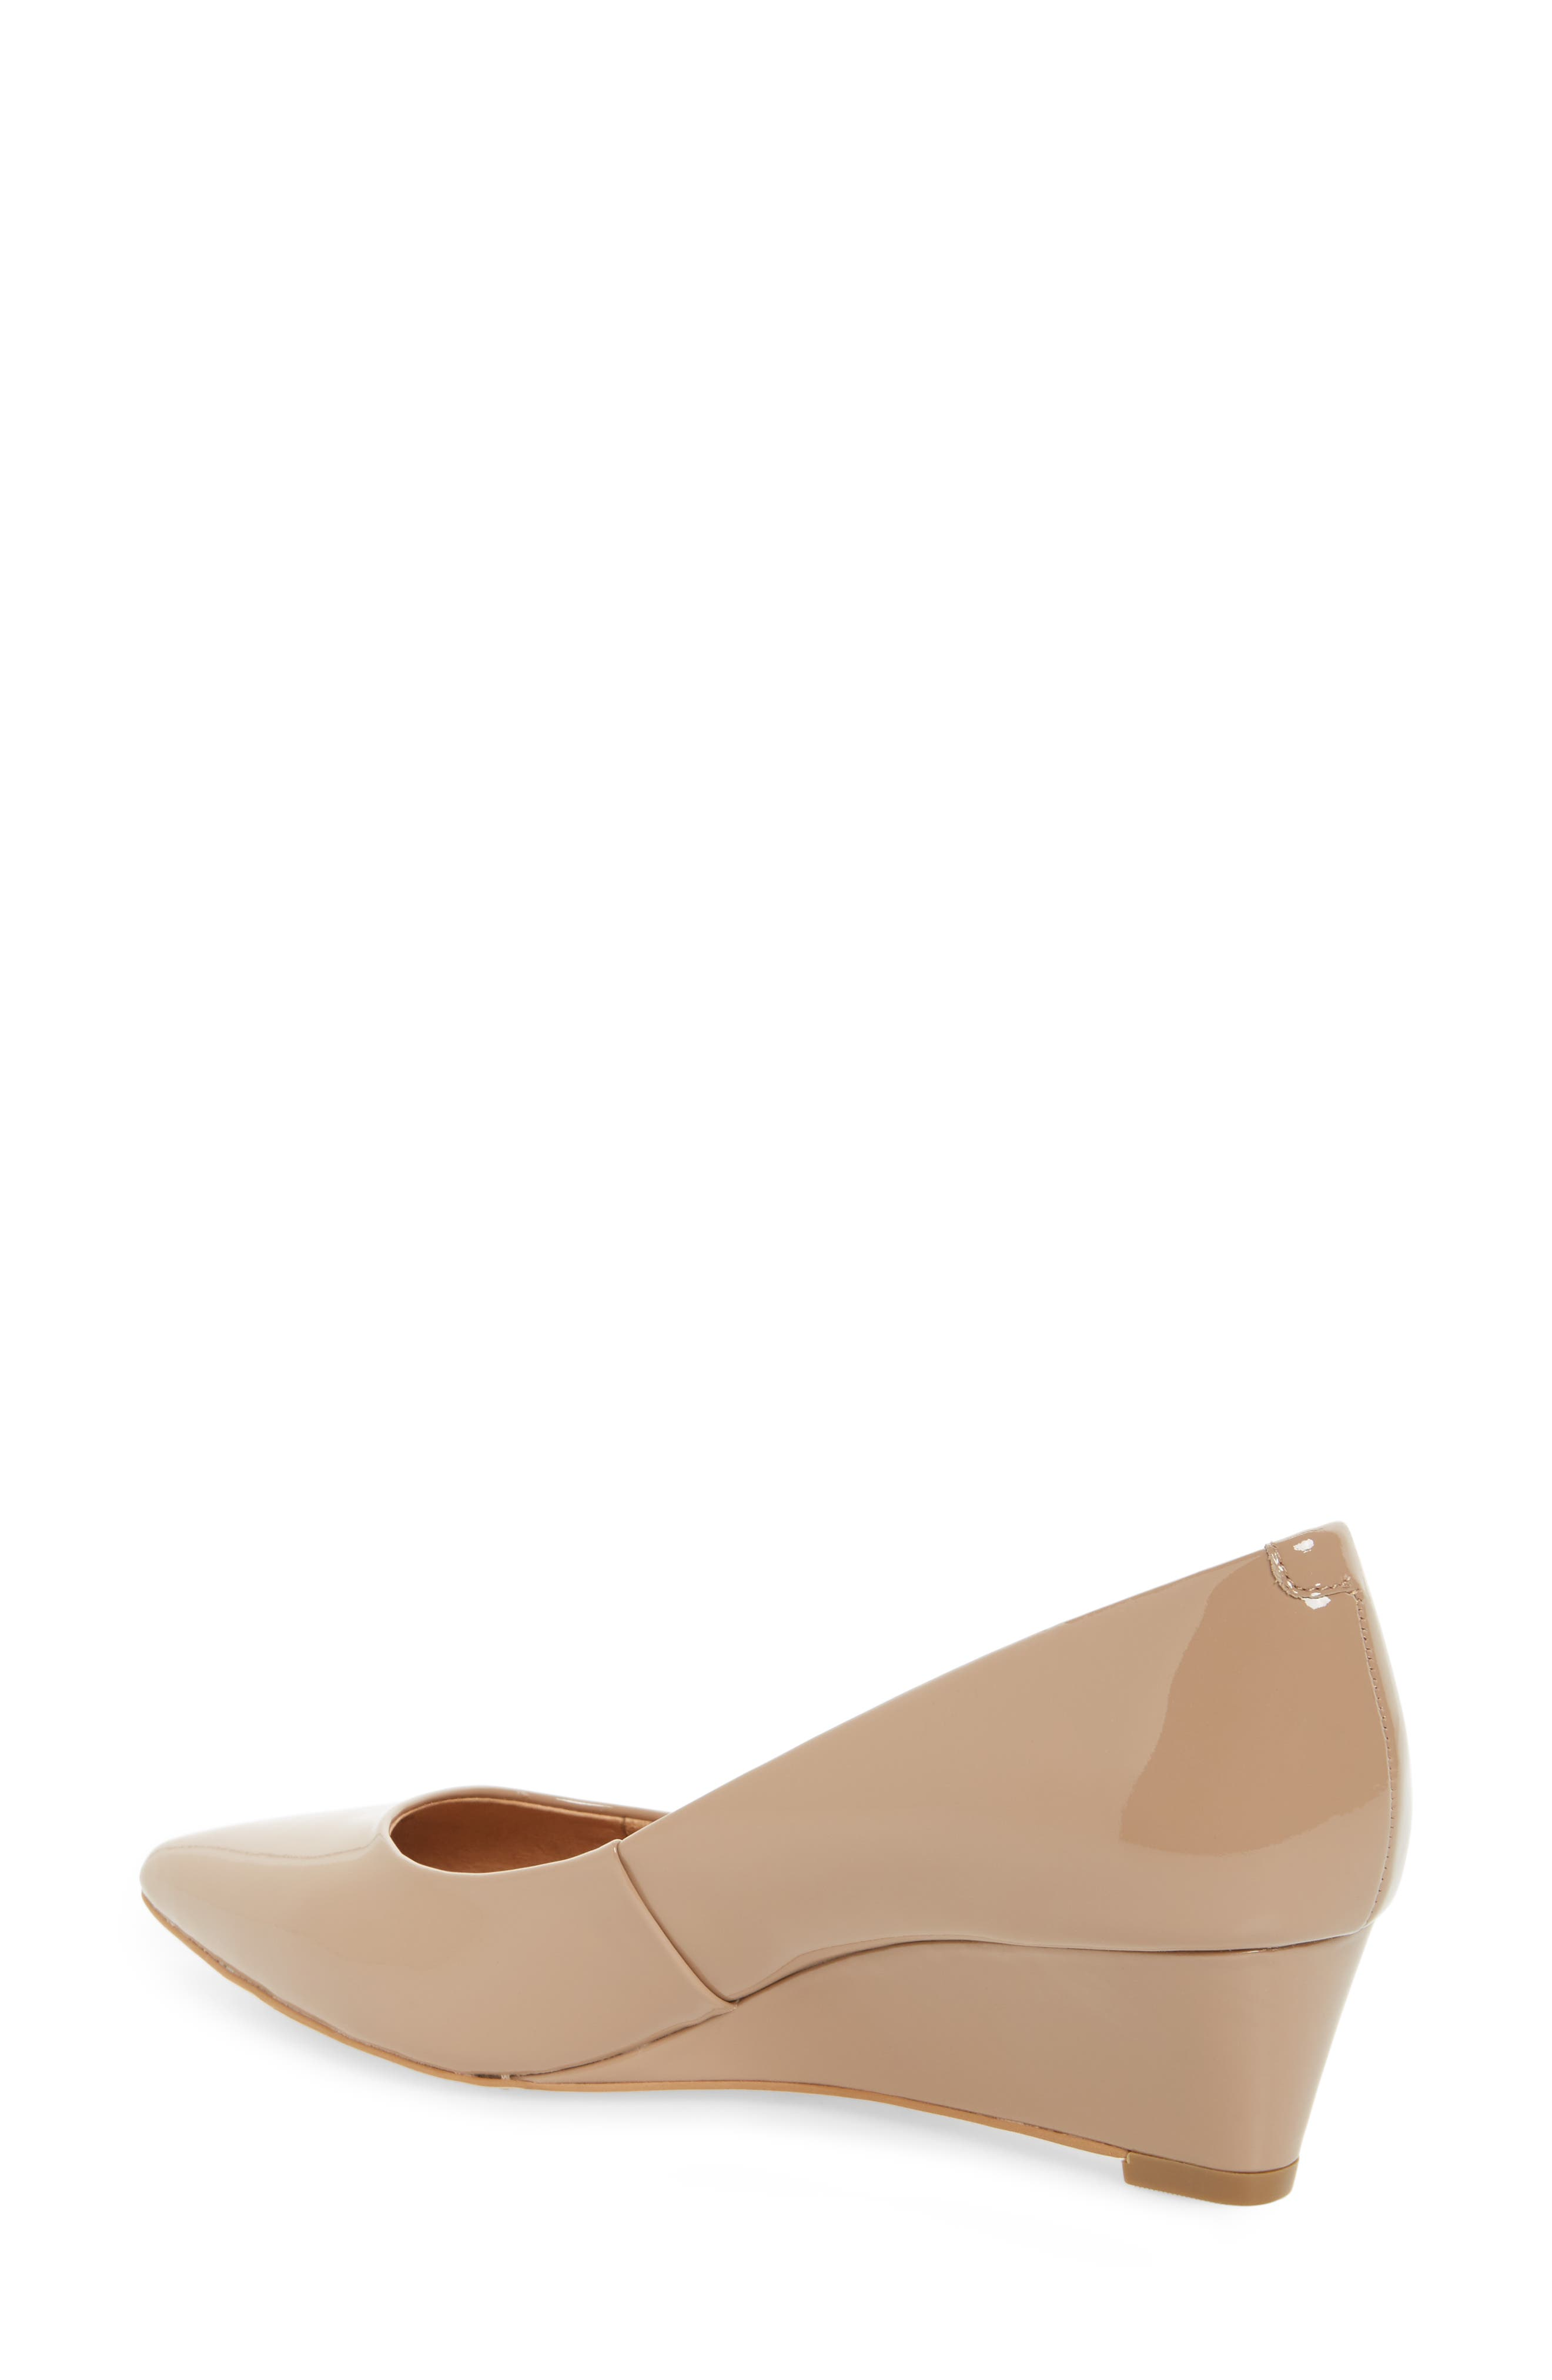 Alternate Image 2  - Corso Como Nelly Pointy Toe Wedge Pump (Women)